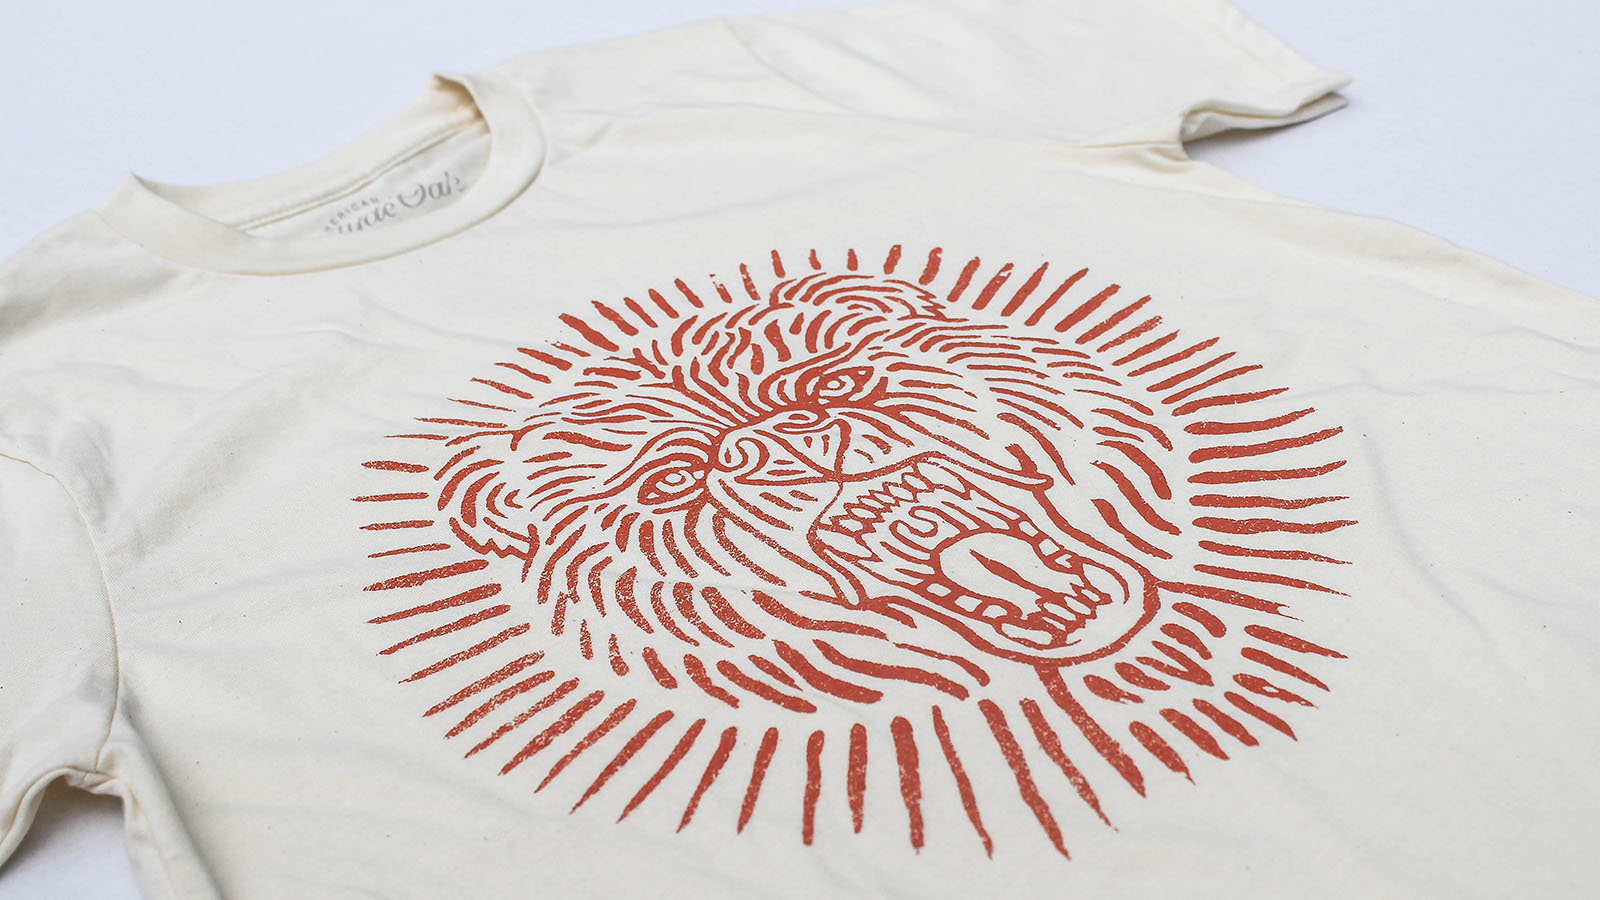 Need Help Designing A Great T-Shirt? These Designers Are For Hire